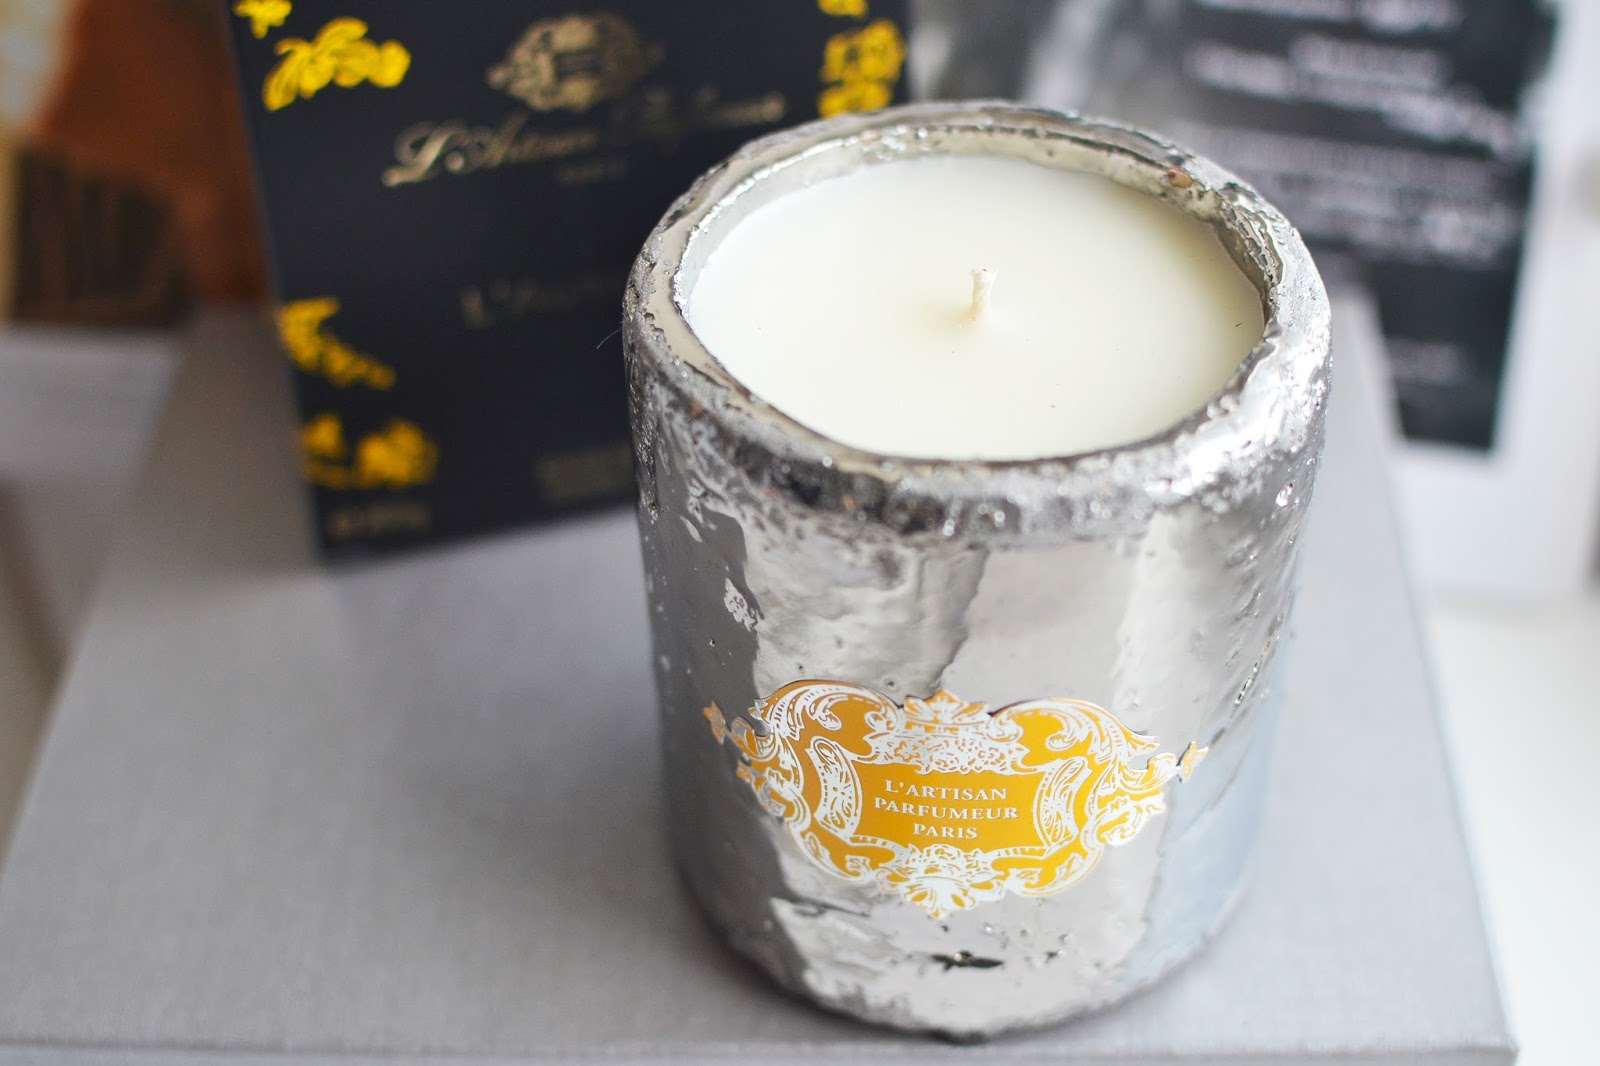 l'artisan perfumeur l'atuomne candle